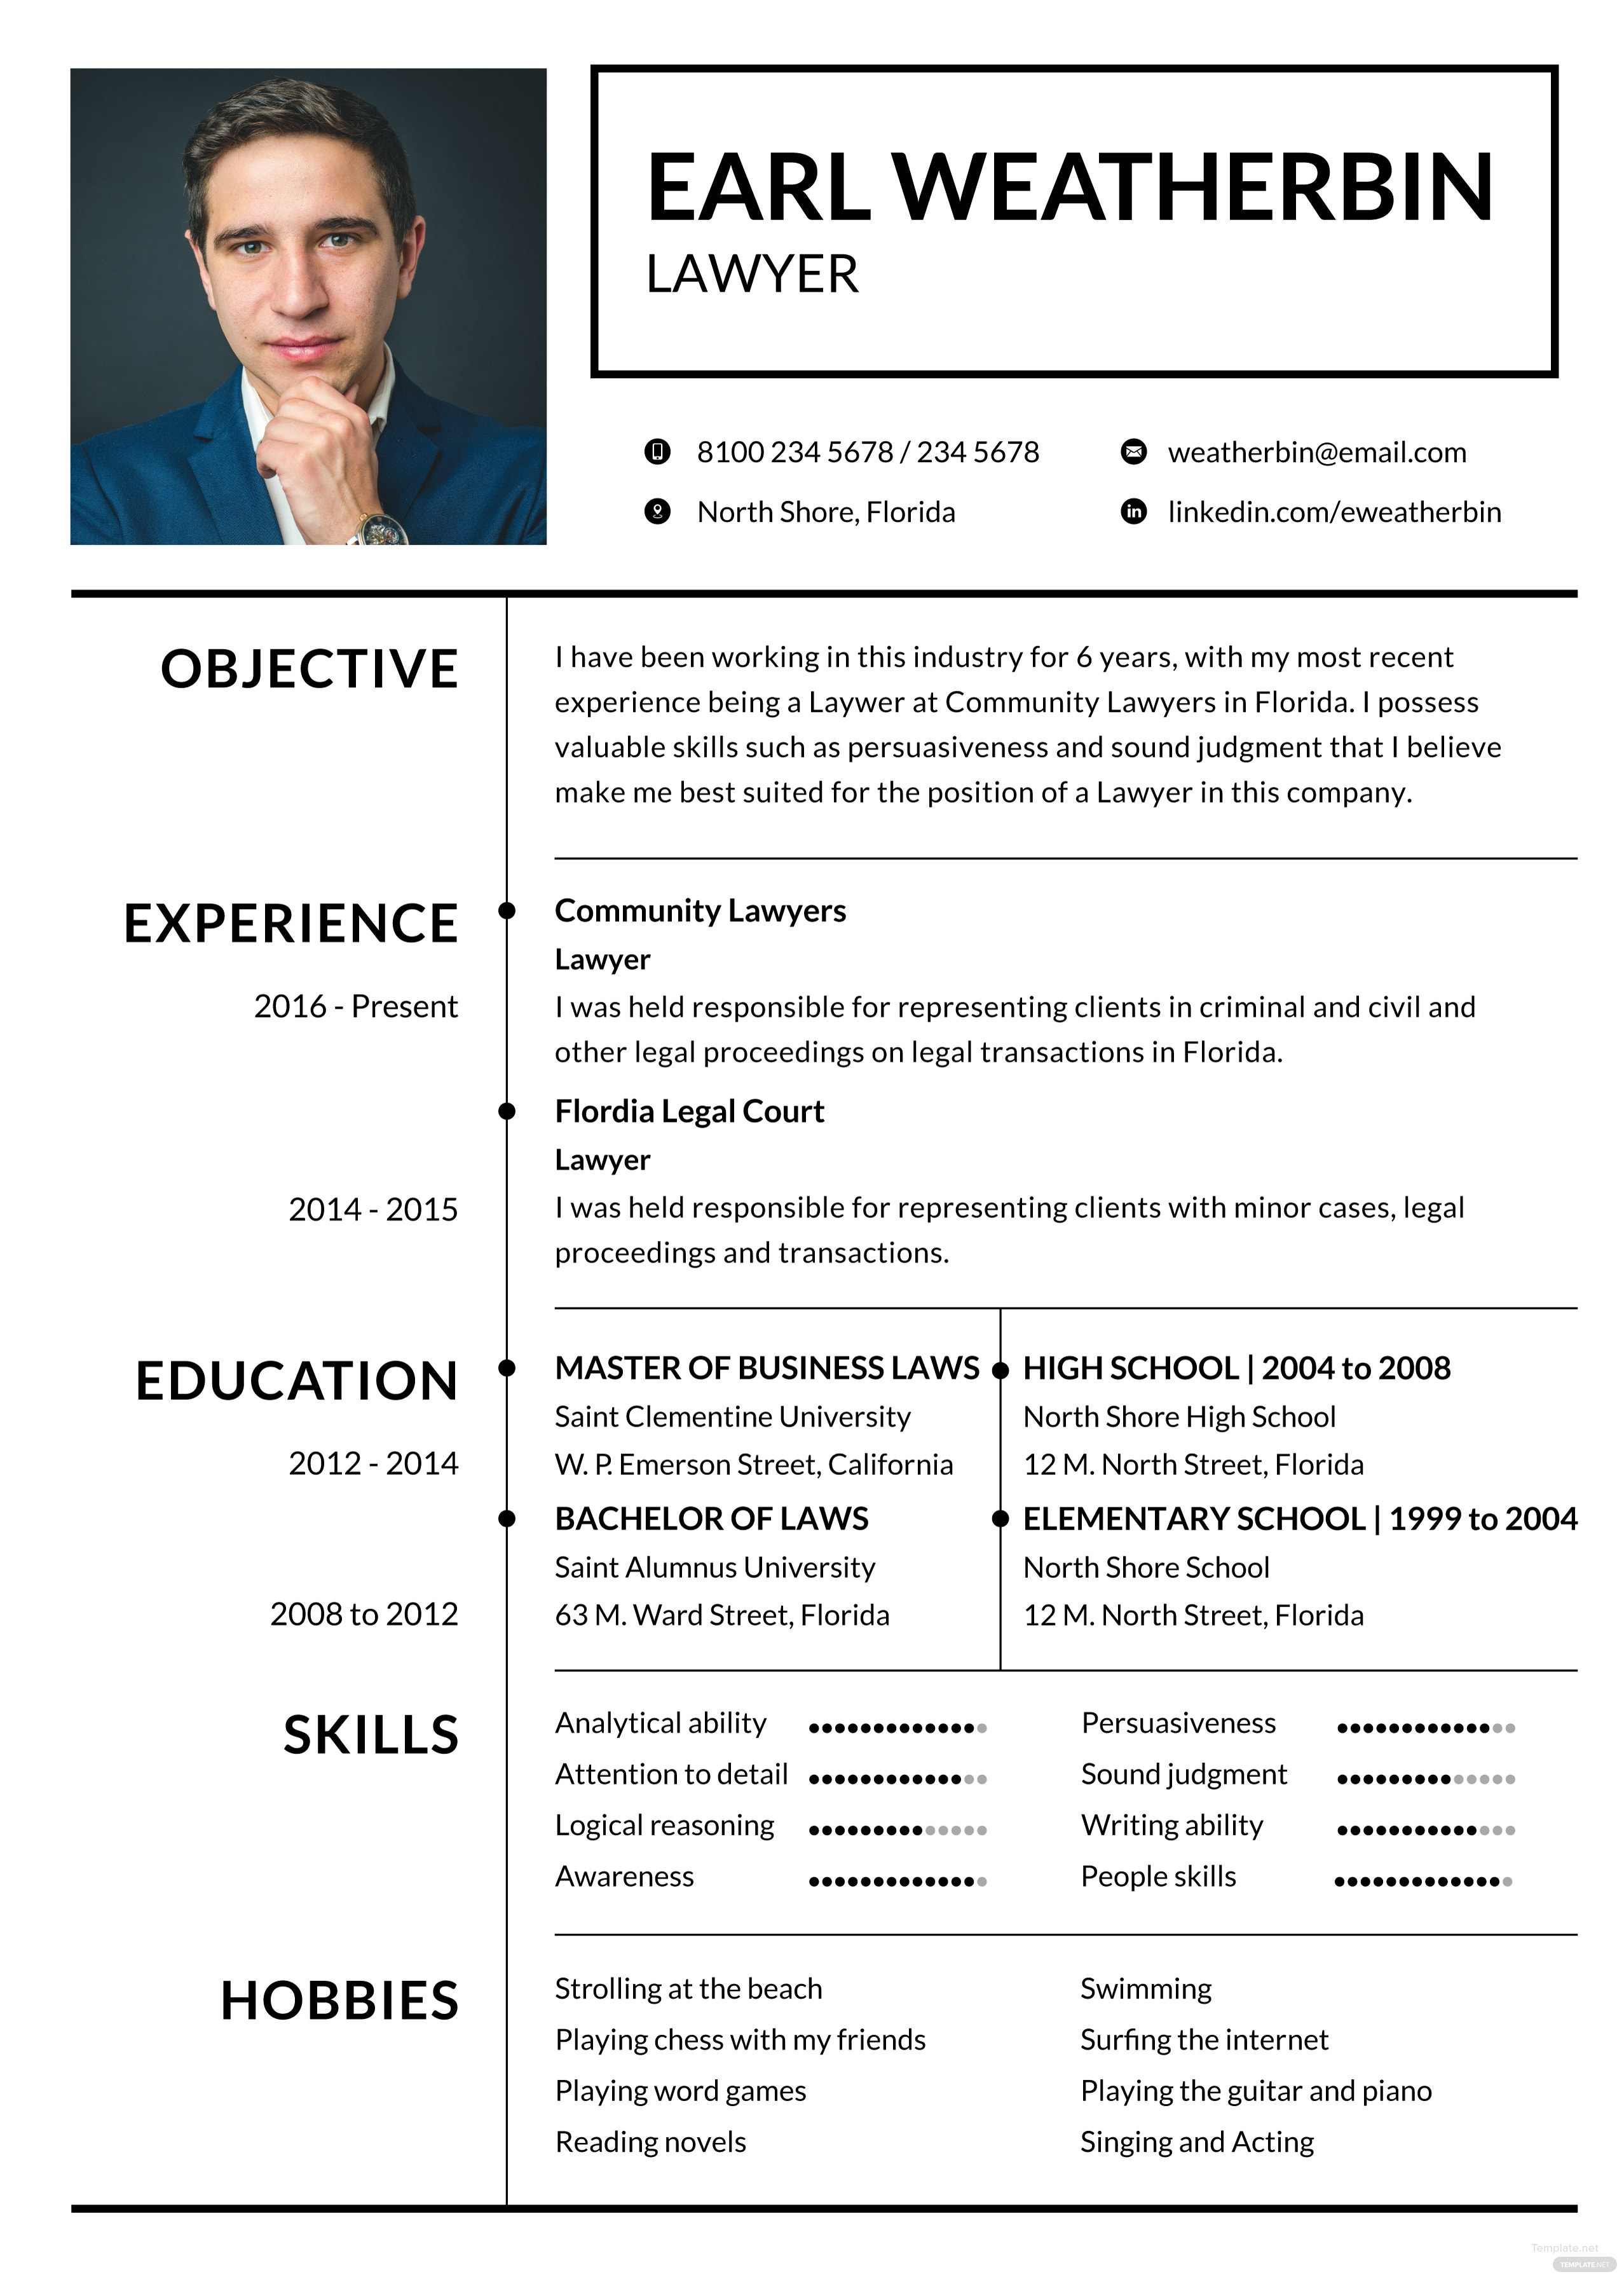 free basic lawyer resume template in adobe photoshop